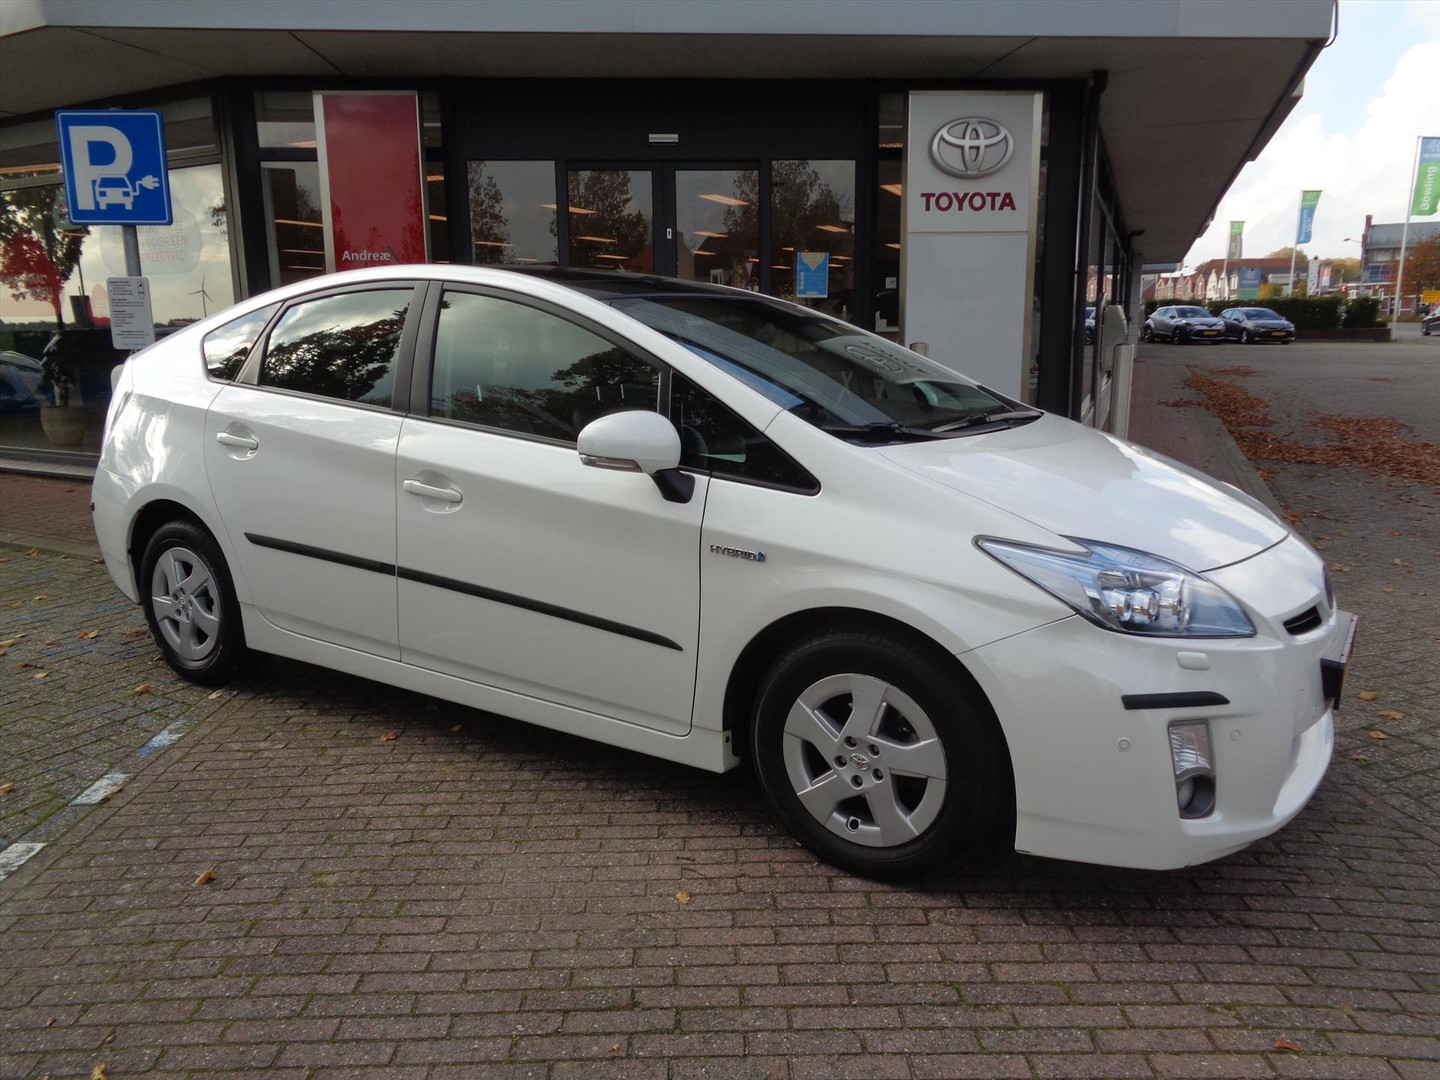 Toyota Prius 1.8 full hybrid executive solar roof